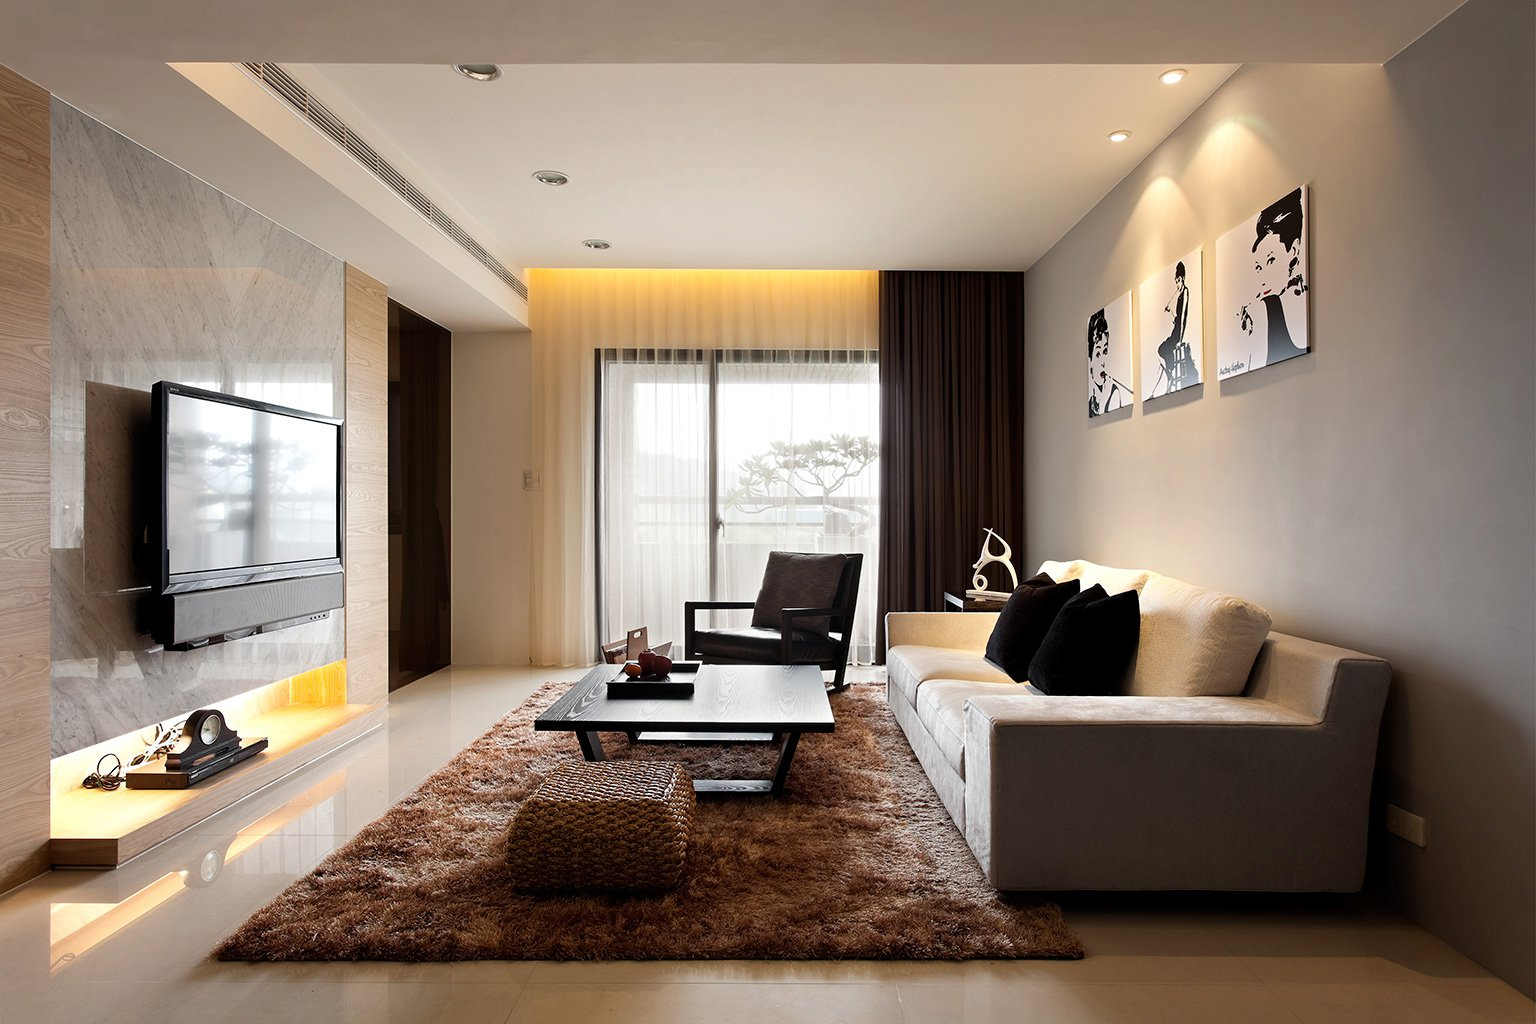 Marvelous 25 Best Modern Living Room Designs. Jul 14, 2015. 23.9kshares